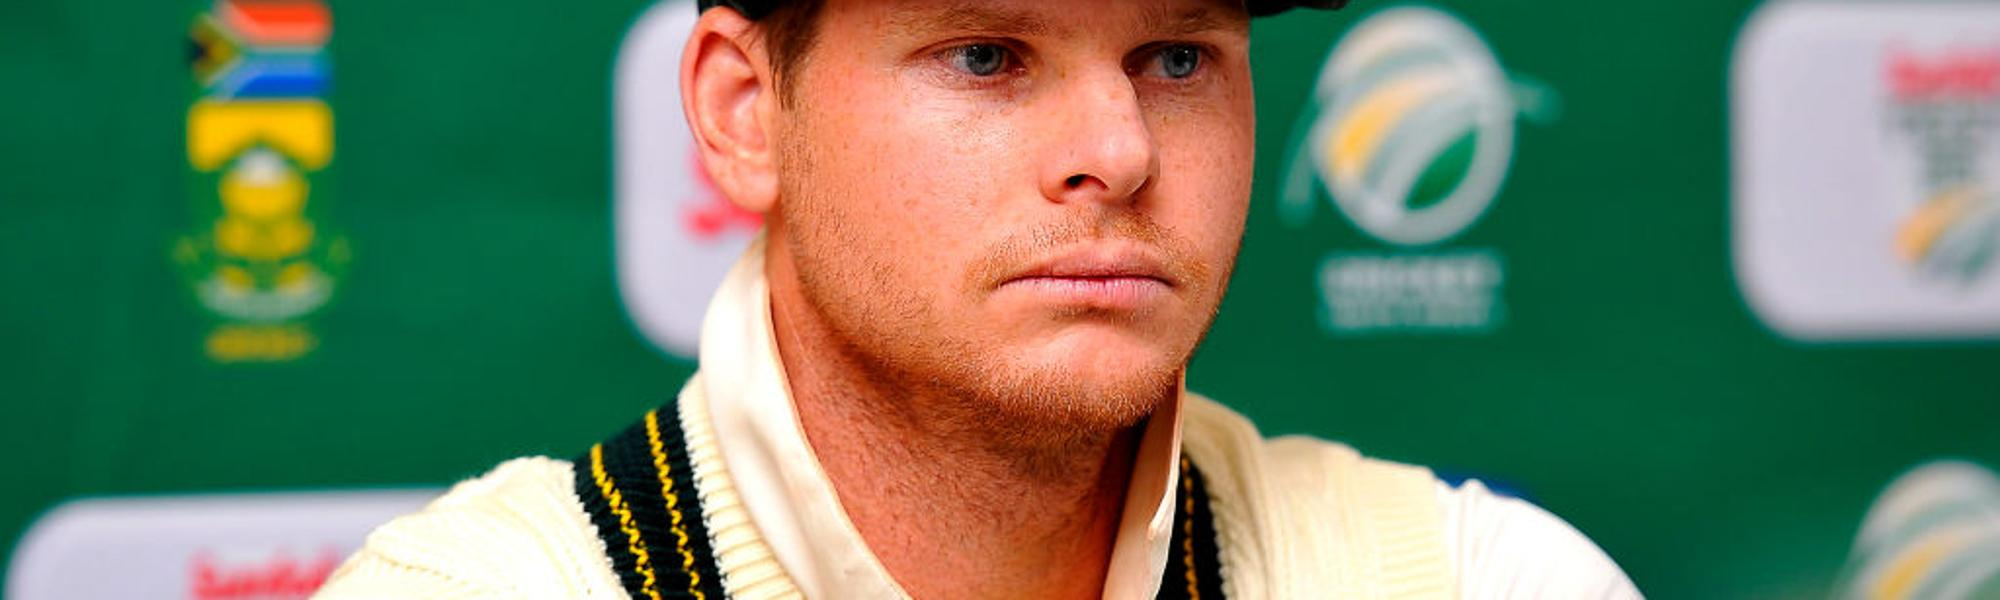 Steven Smith fields questions after day 3 of the third Test match between South Africa and Australia at Newlands.